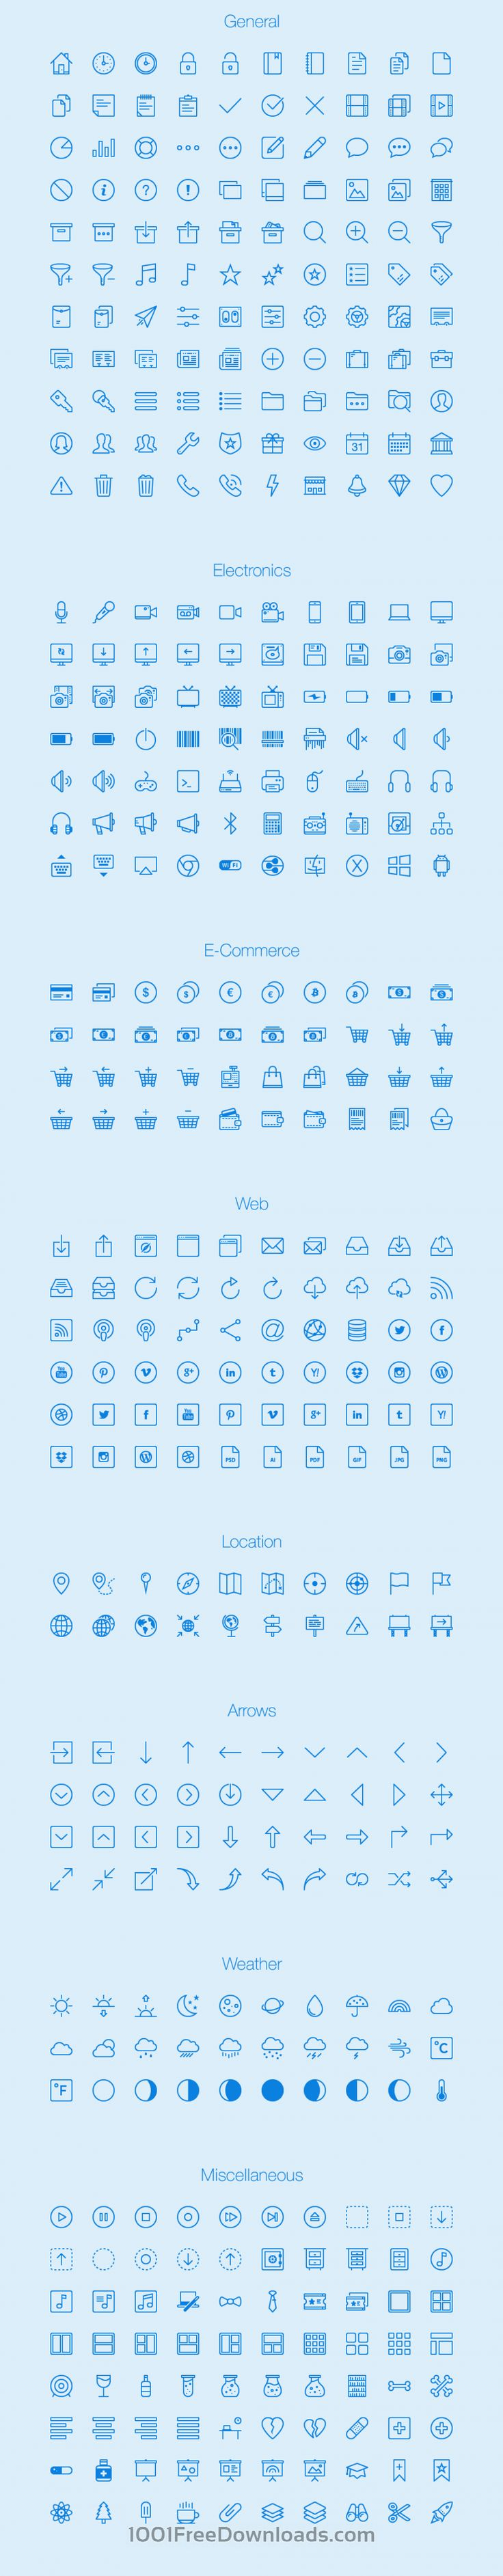 Free Vectors: Lynny Icons - Full | Ai, Eps, Png | (2.9 MB) | 1001freedownloads.com